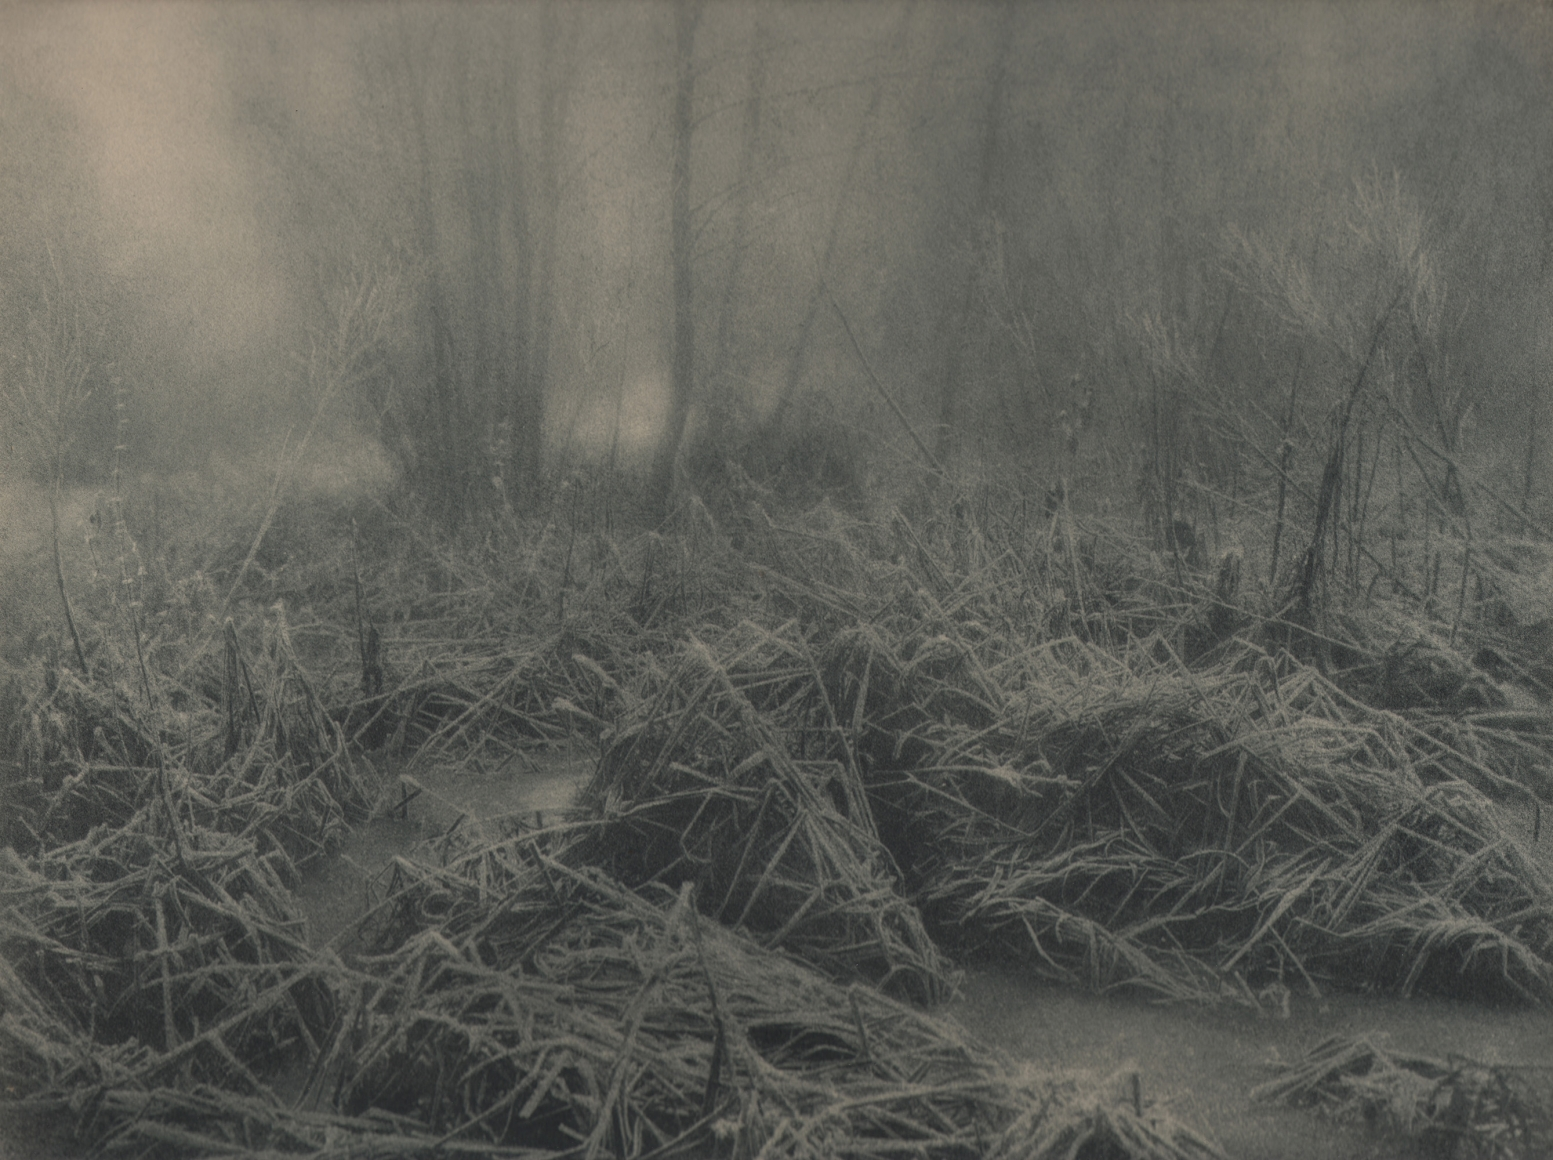 10. Léonard Misonne, Untitled, n.d. Frosted, snowy brush and grass in soft light. Gray/green-toned print.